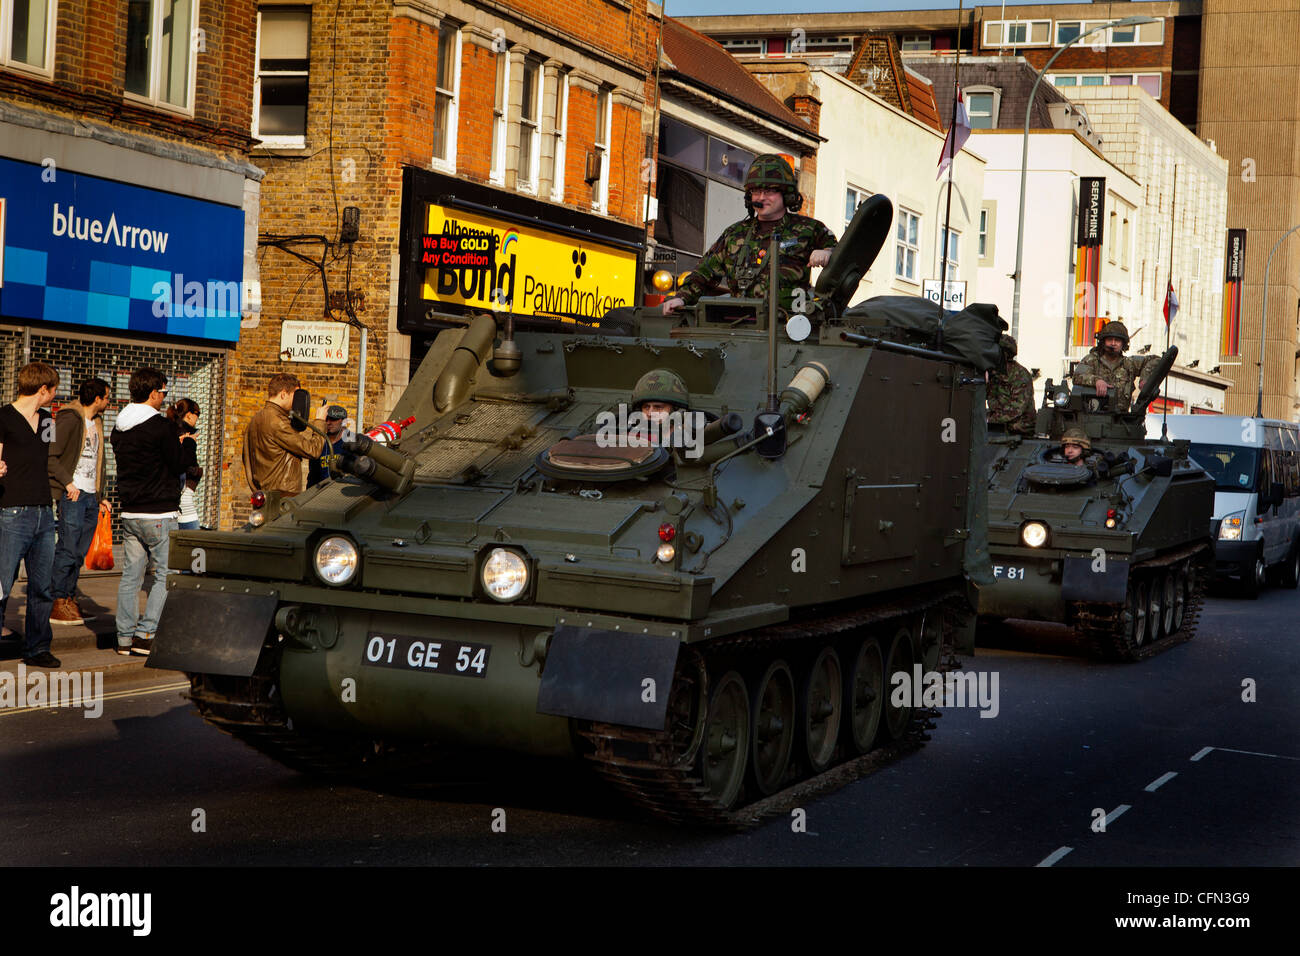 Troops in armoured vehicles drive past High Street shops during a Royal Yeomanry parade - Stock Image